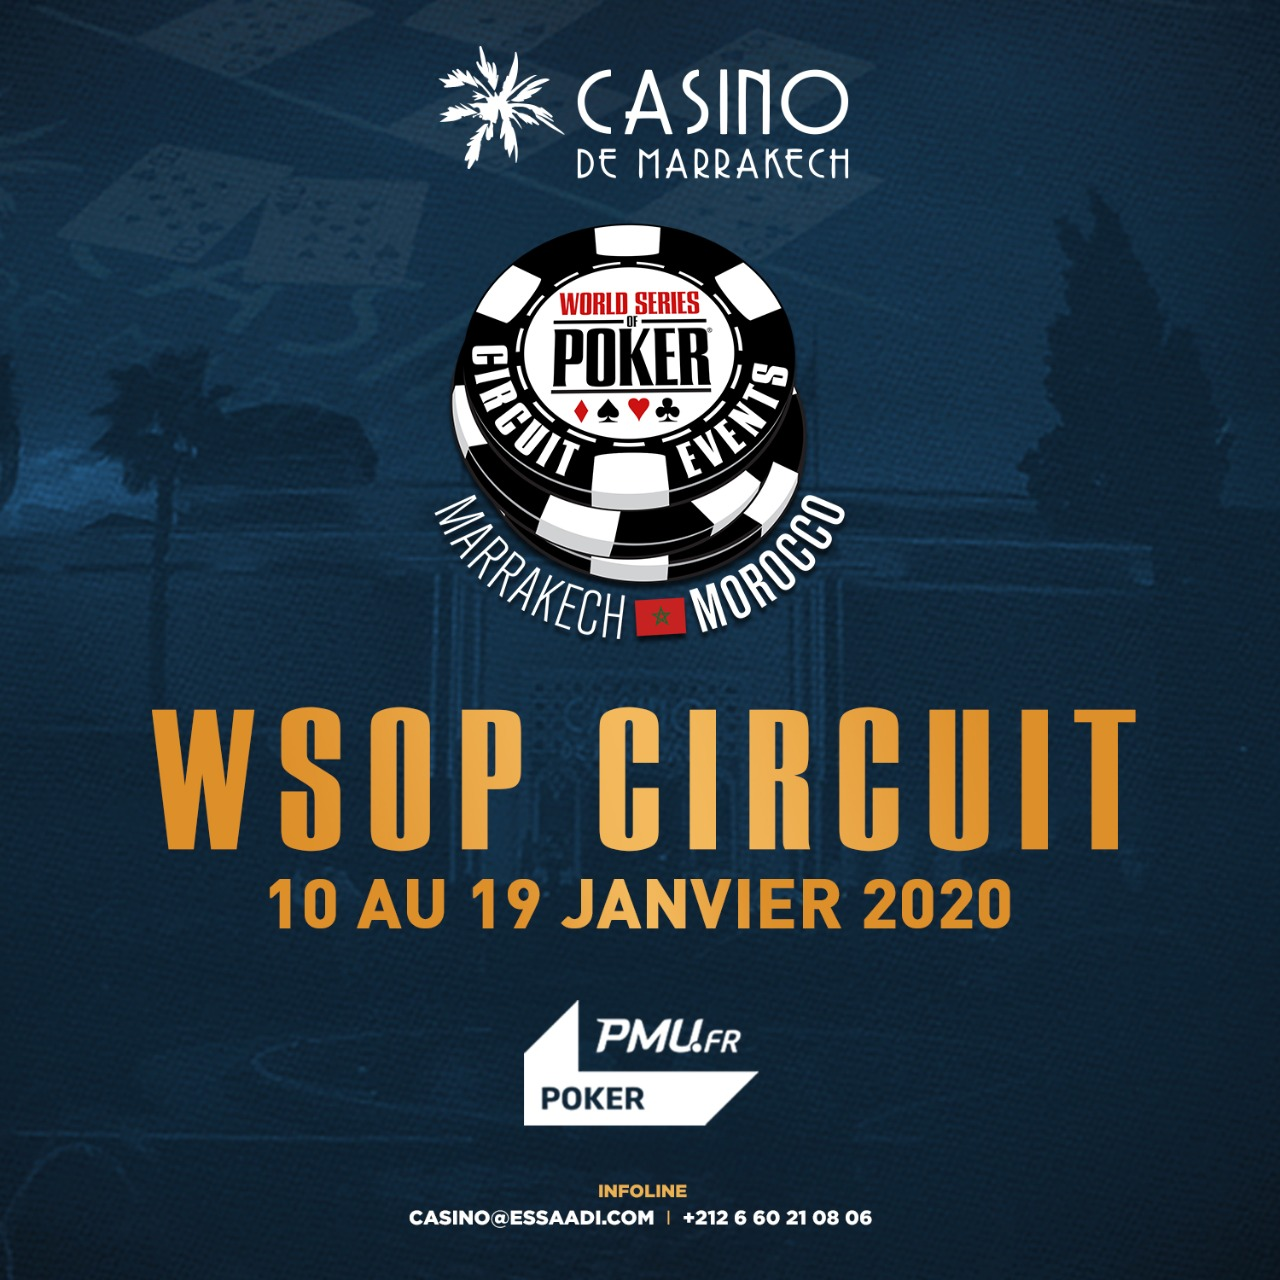 WSOP Circuit Marrakech 2020